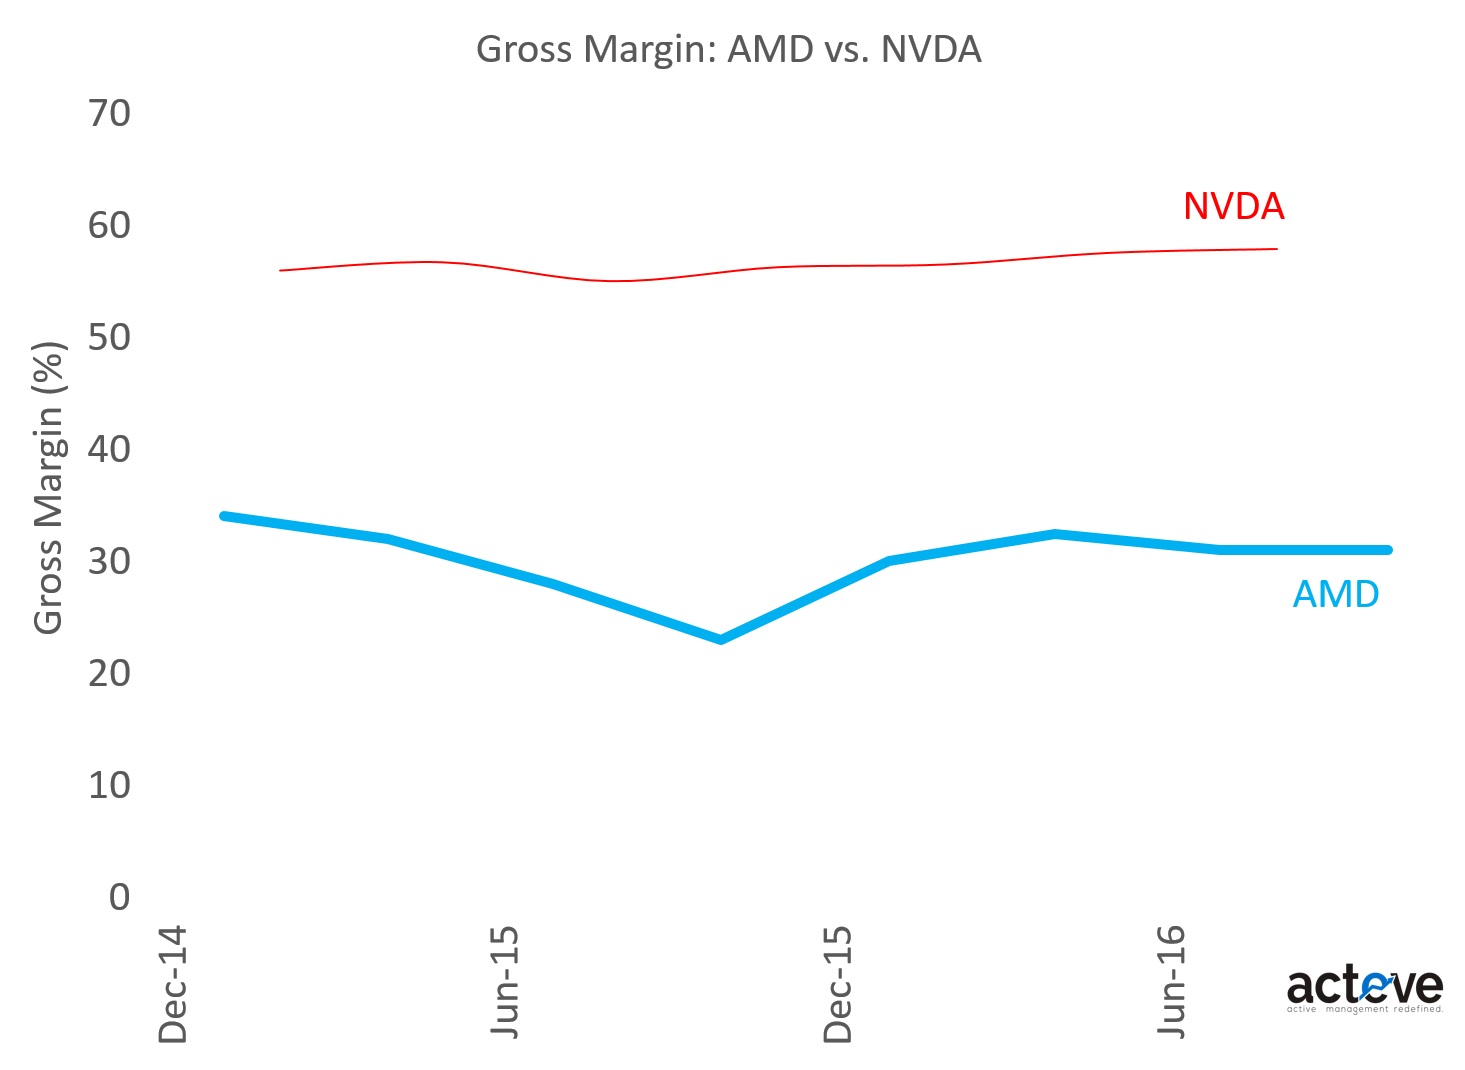 NVIDIA AMD vs. NVDA Gross Margins